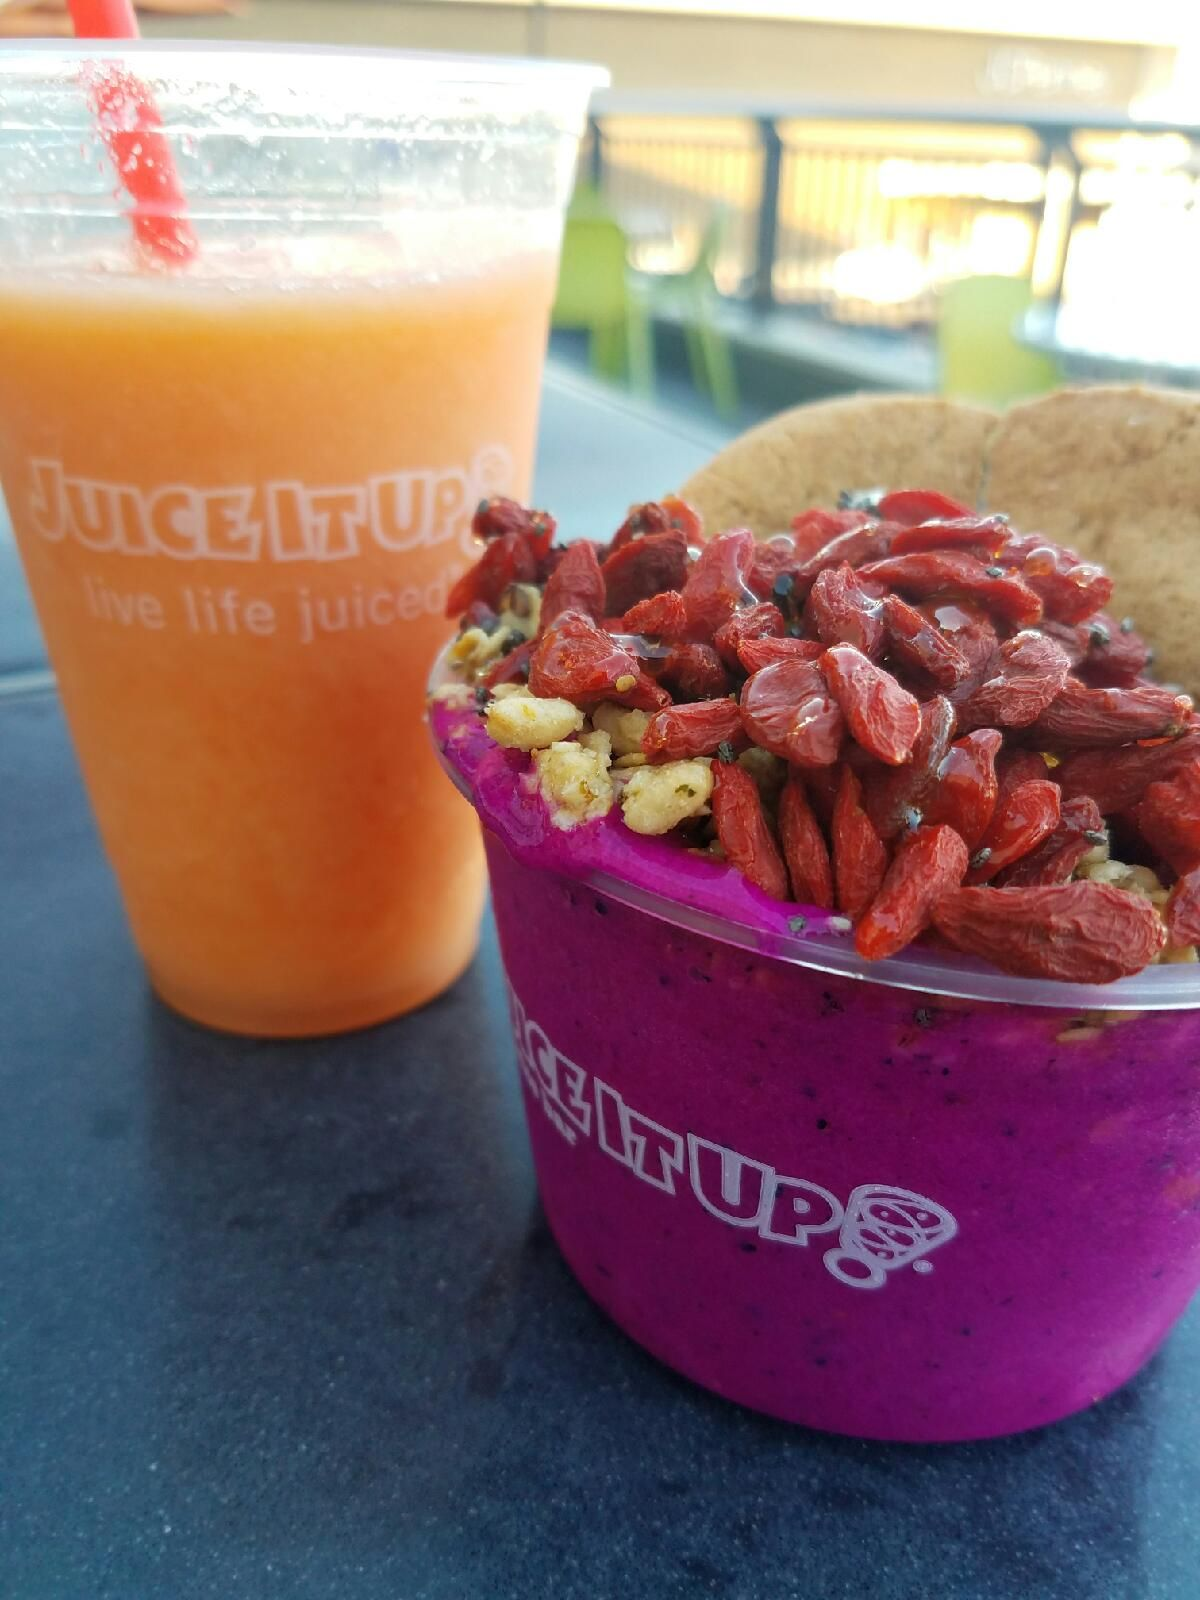 With This Mango Smoothie And Pitaya Bowl From Juice It Up We Make